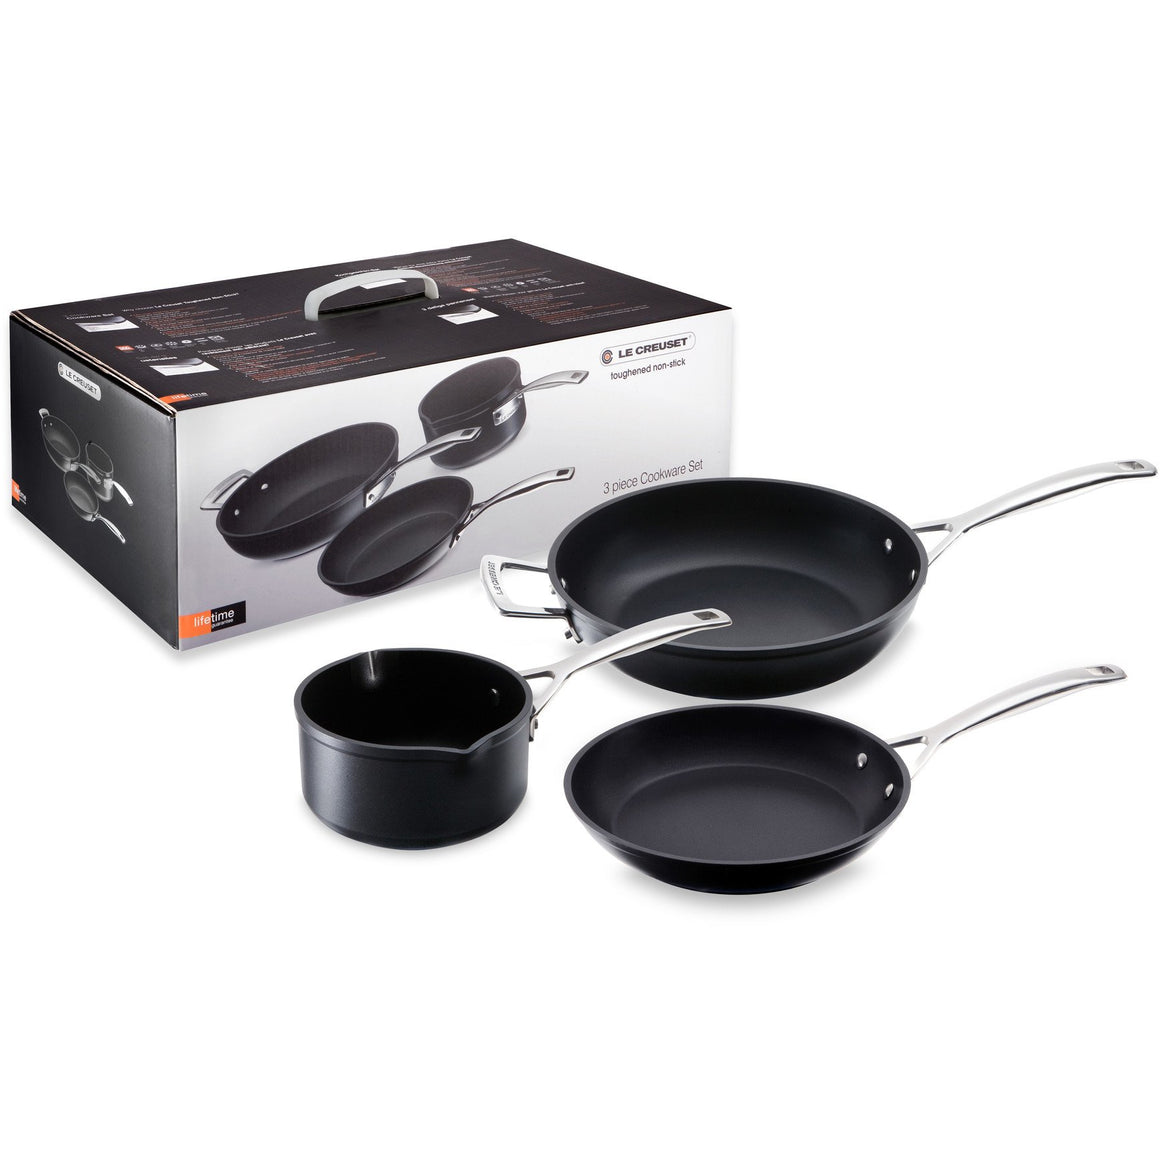 Le Creuset T.N.S 3 Piece Cookware Set